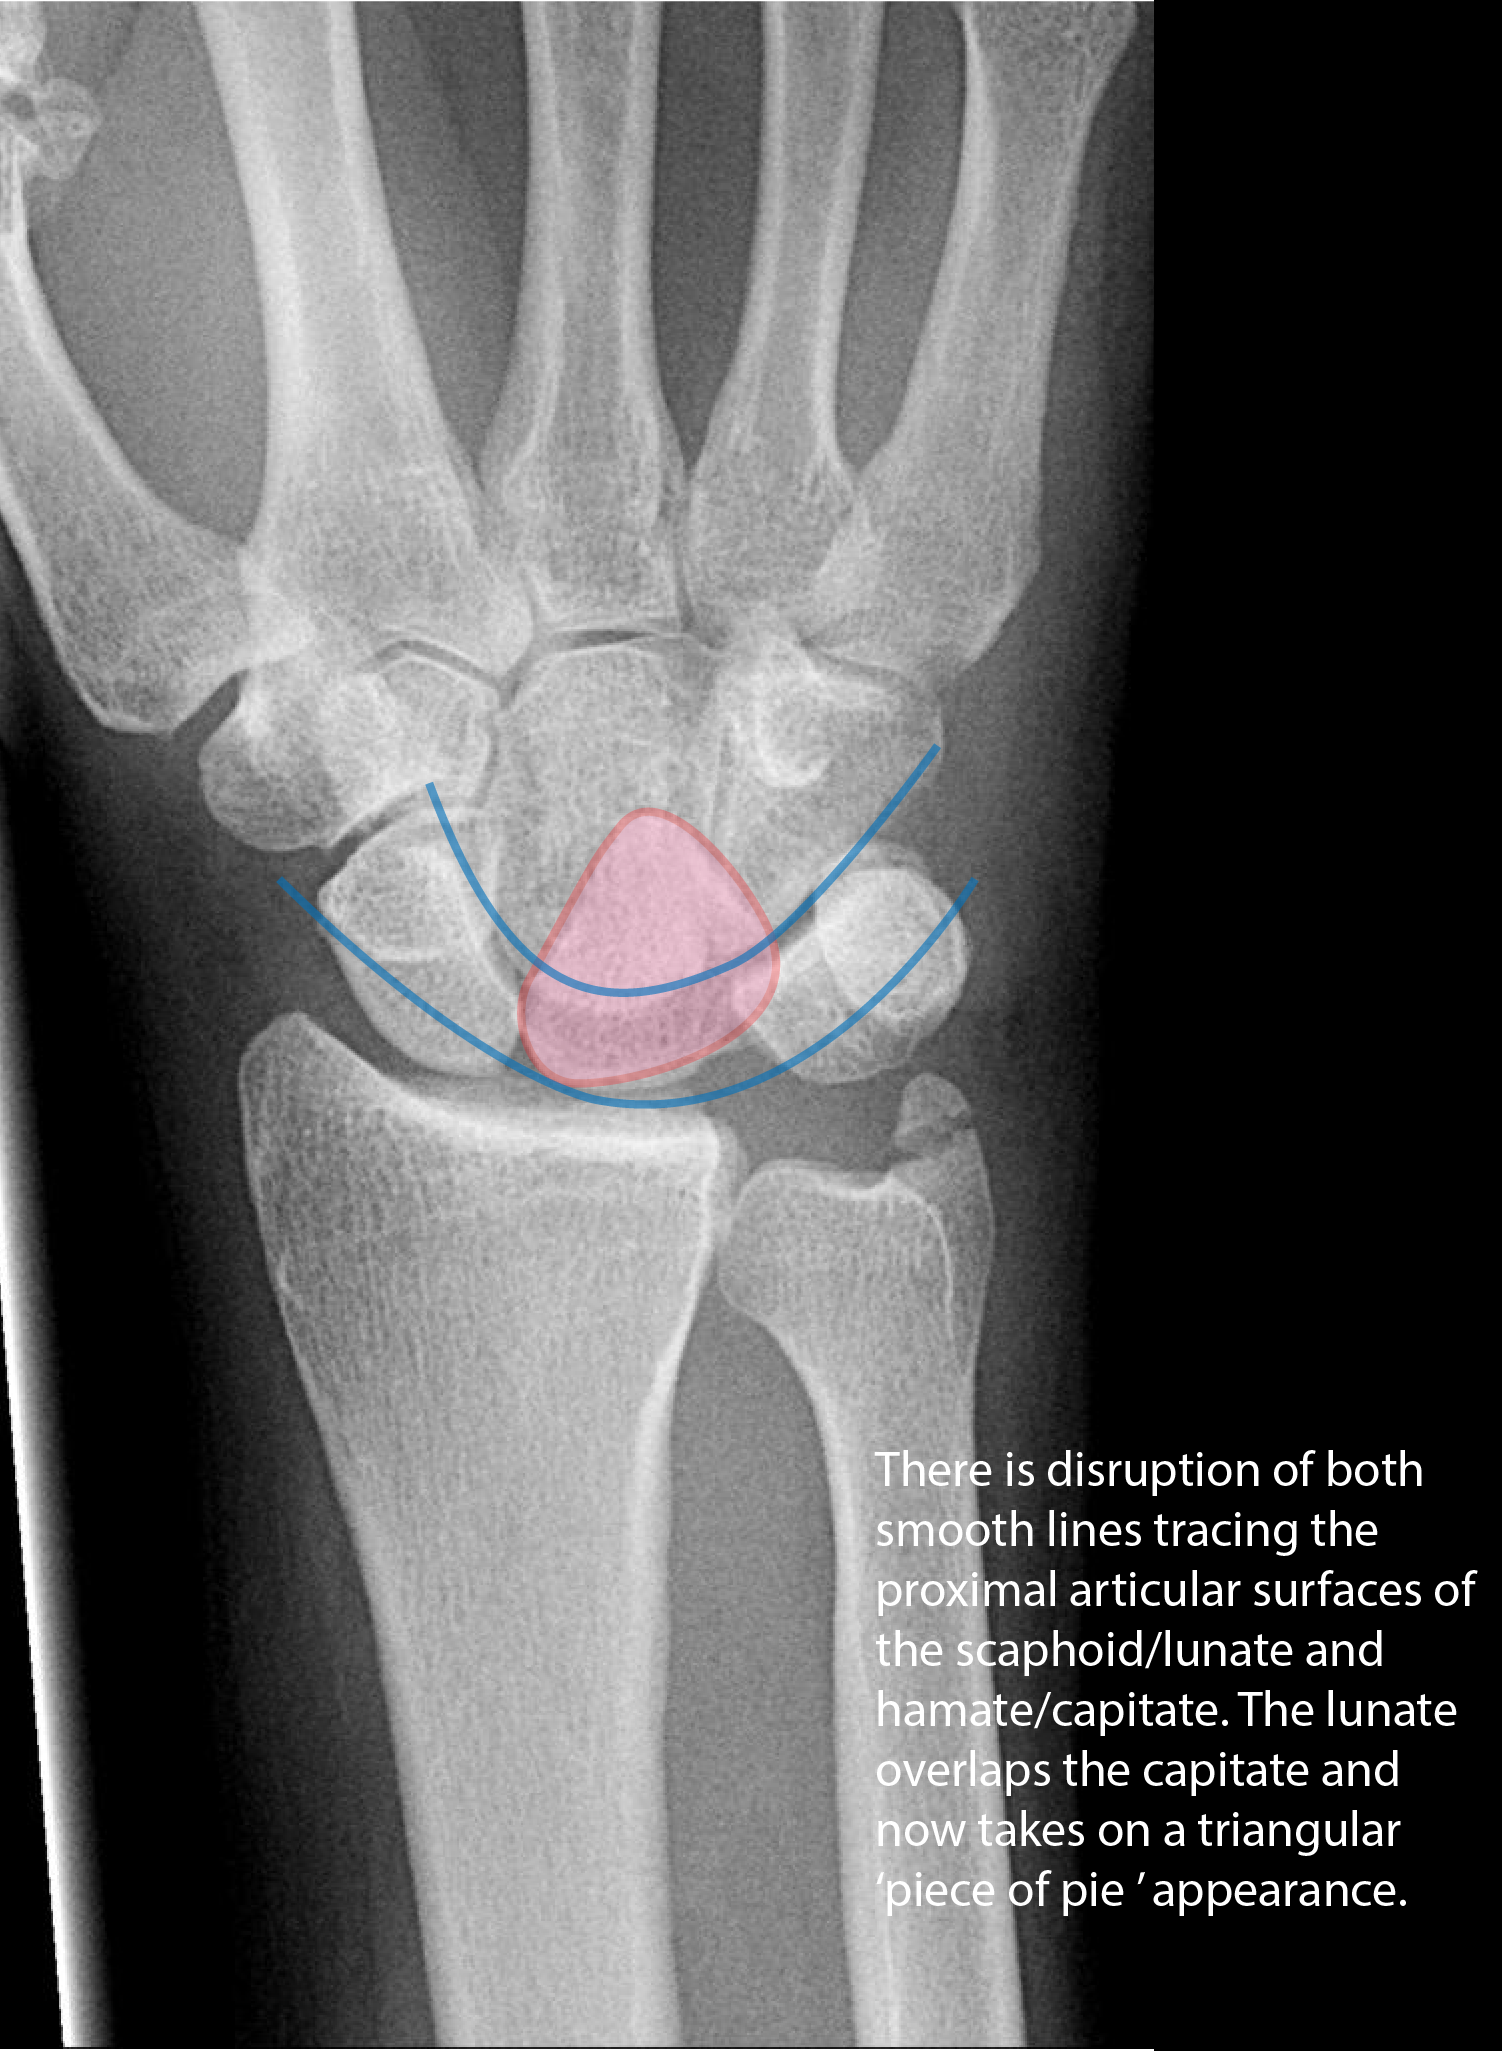 Lunate Dislocation on AP Radiograph